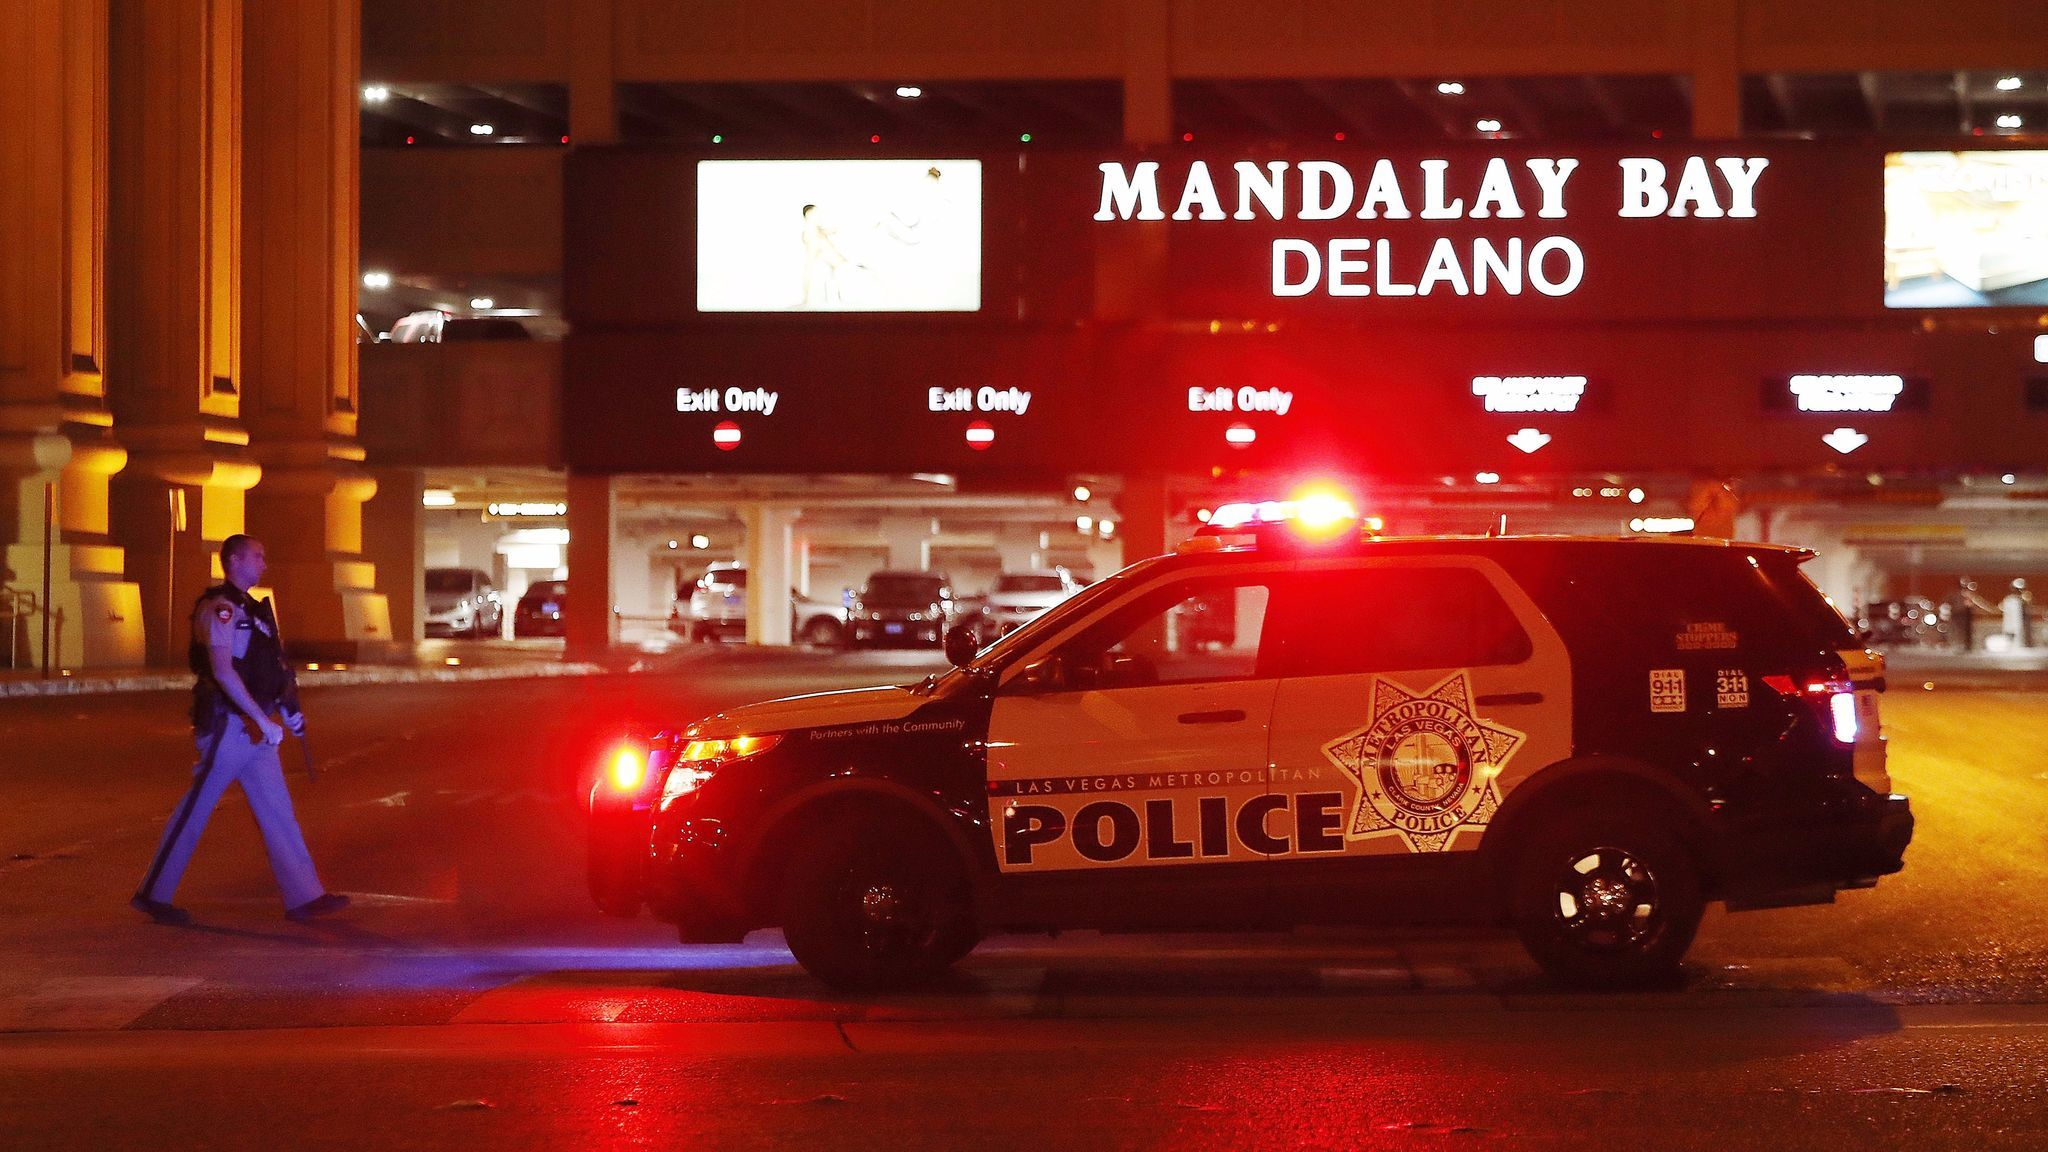 Police outside the Mandalay Bay hotel in Las Vegas on Sunday night. (European Pressphoto Agency)